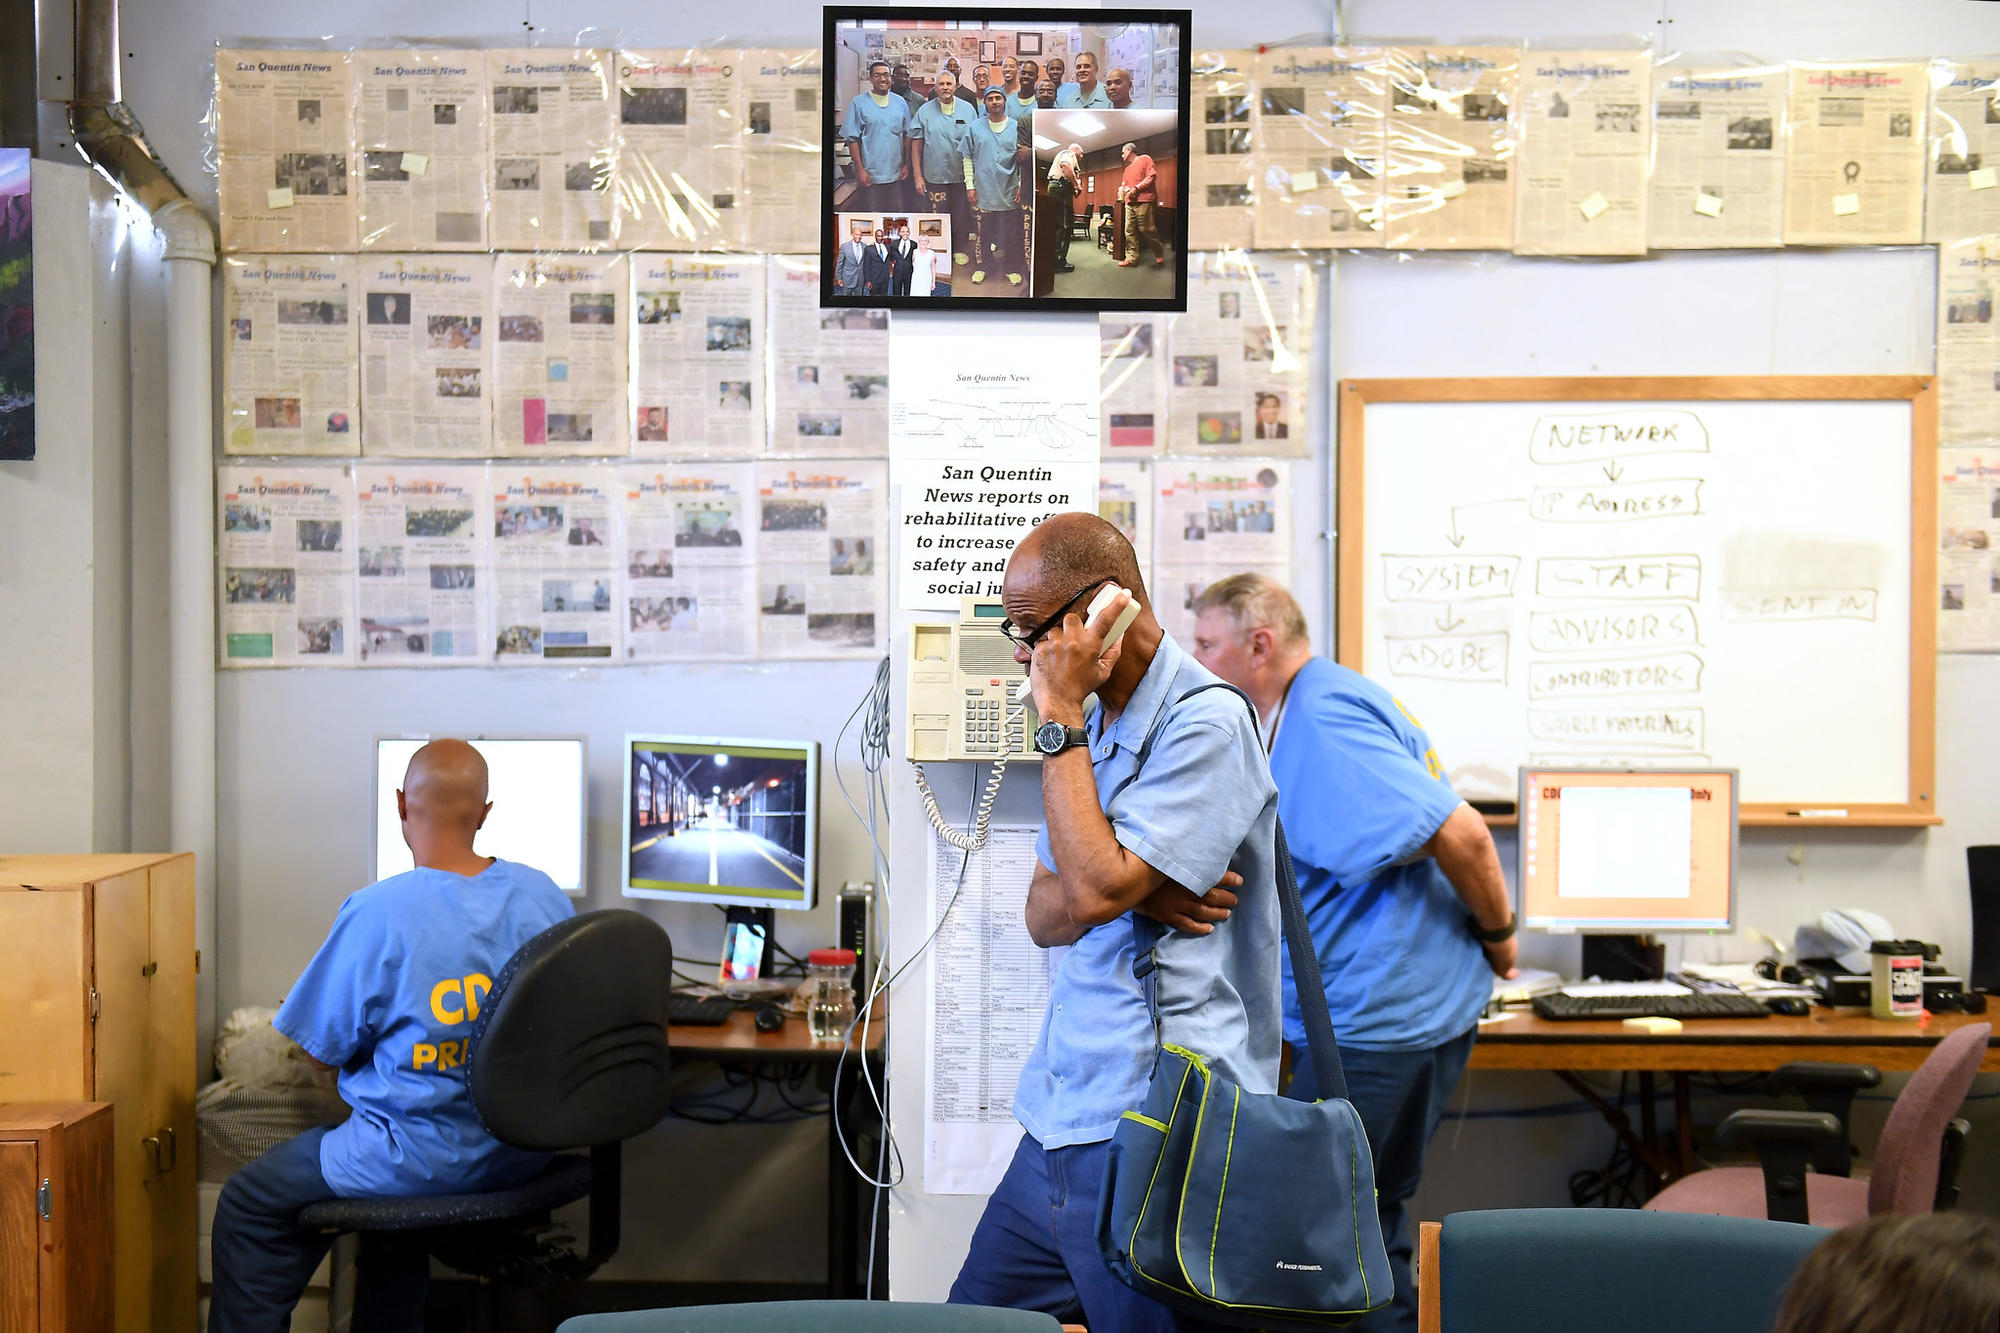 The staff at work in the newsroom of the San Quentin News.